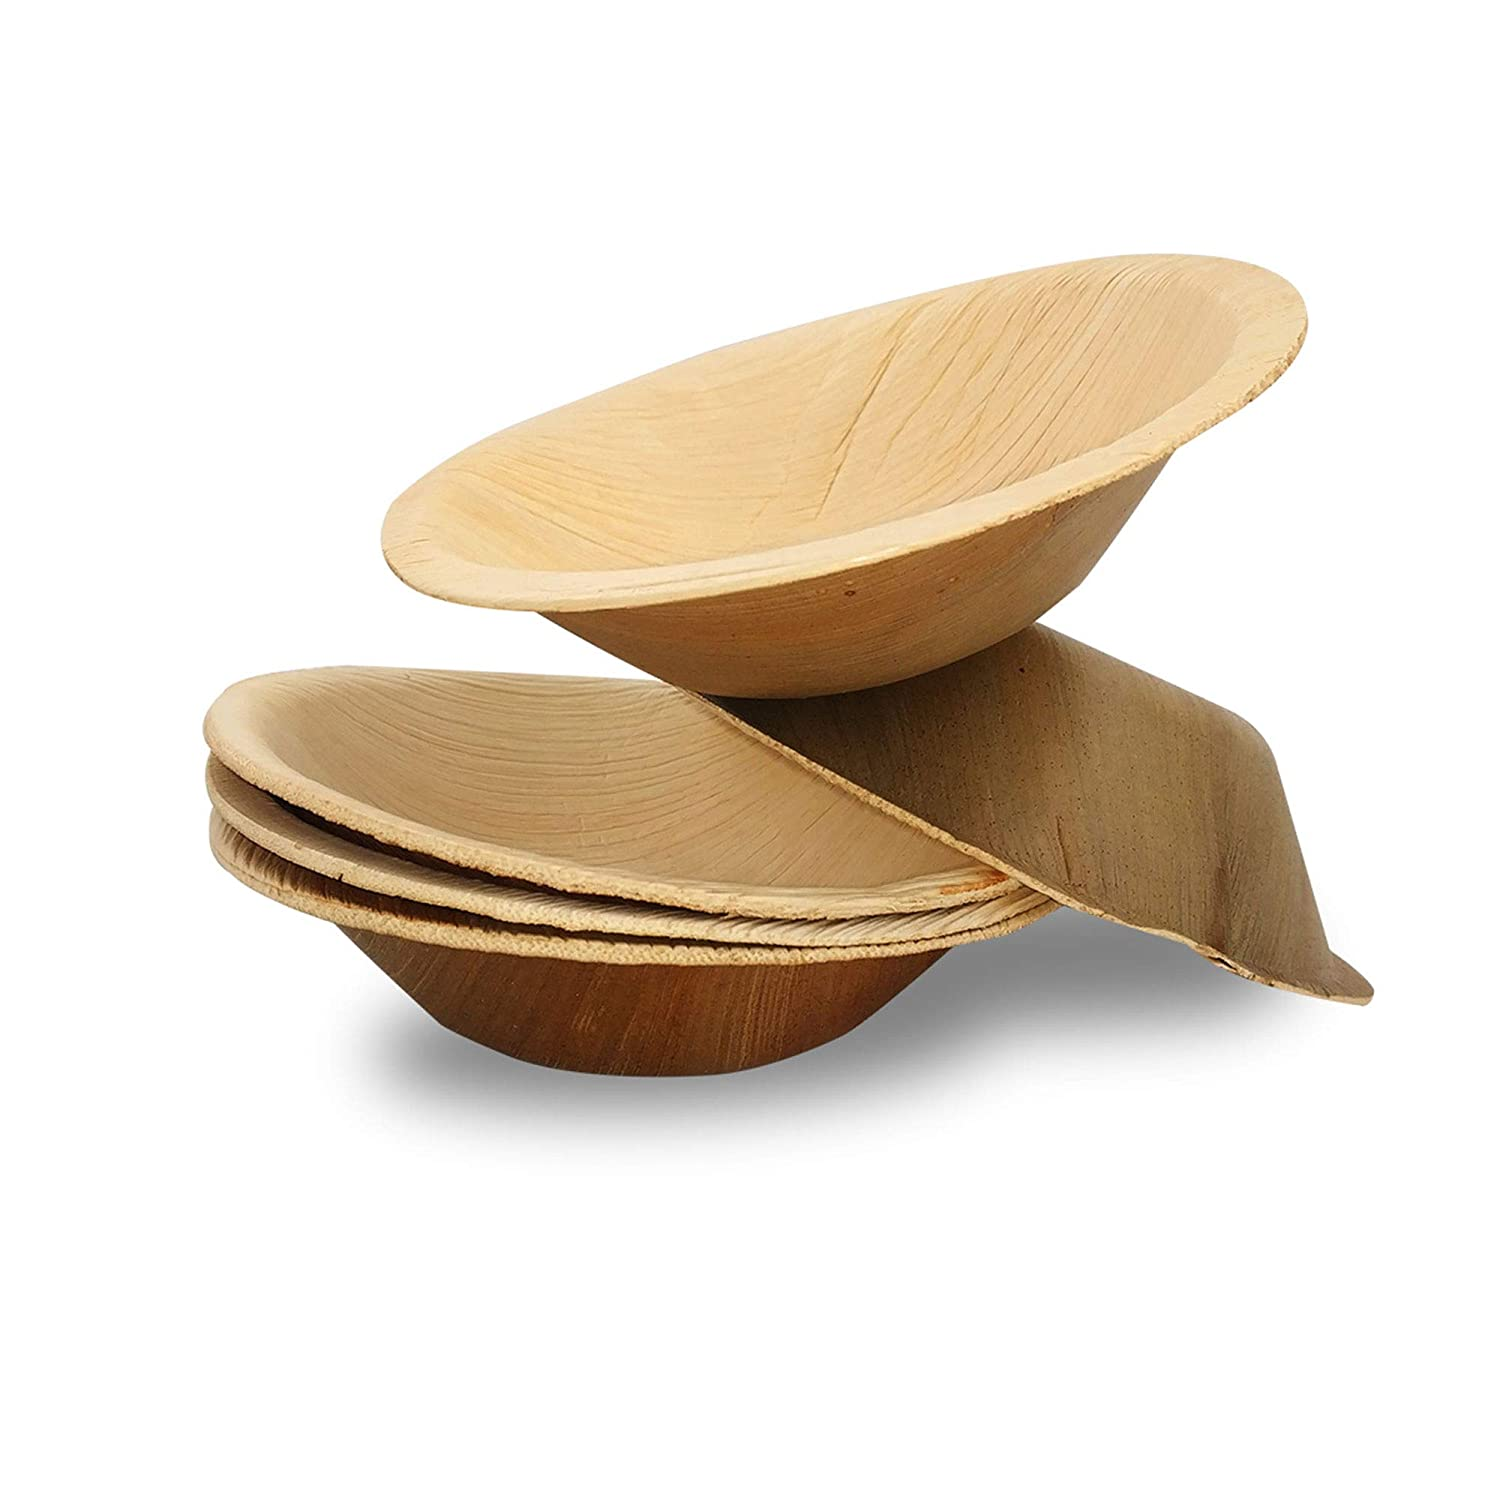 Dtocs Palm Leaf Bowl 5 Inch Round (Pack 50) | Eco-Friendly, Biodegradable, Organic, Compostable Disposable Dinnerware Set For Wedding, Camping, Birthday Parties | Better Than Bamboo, Wooden